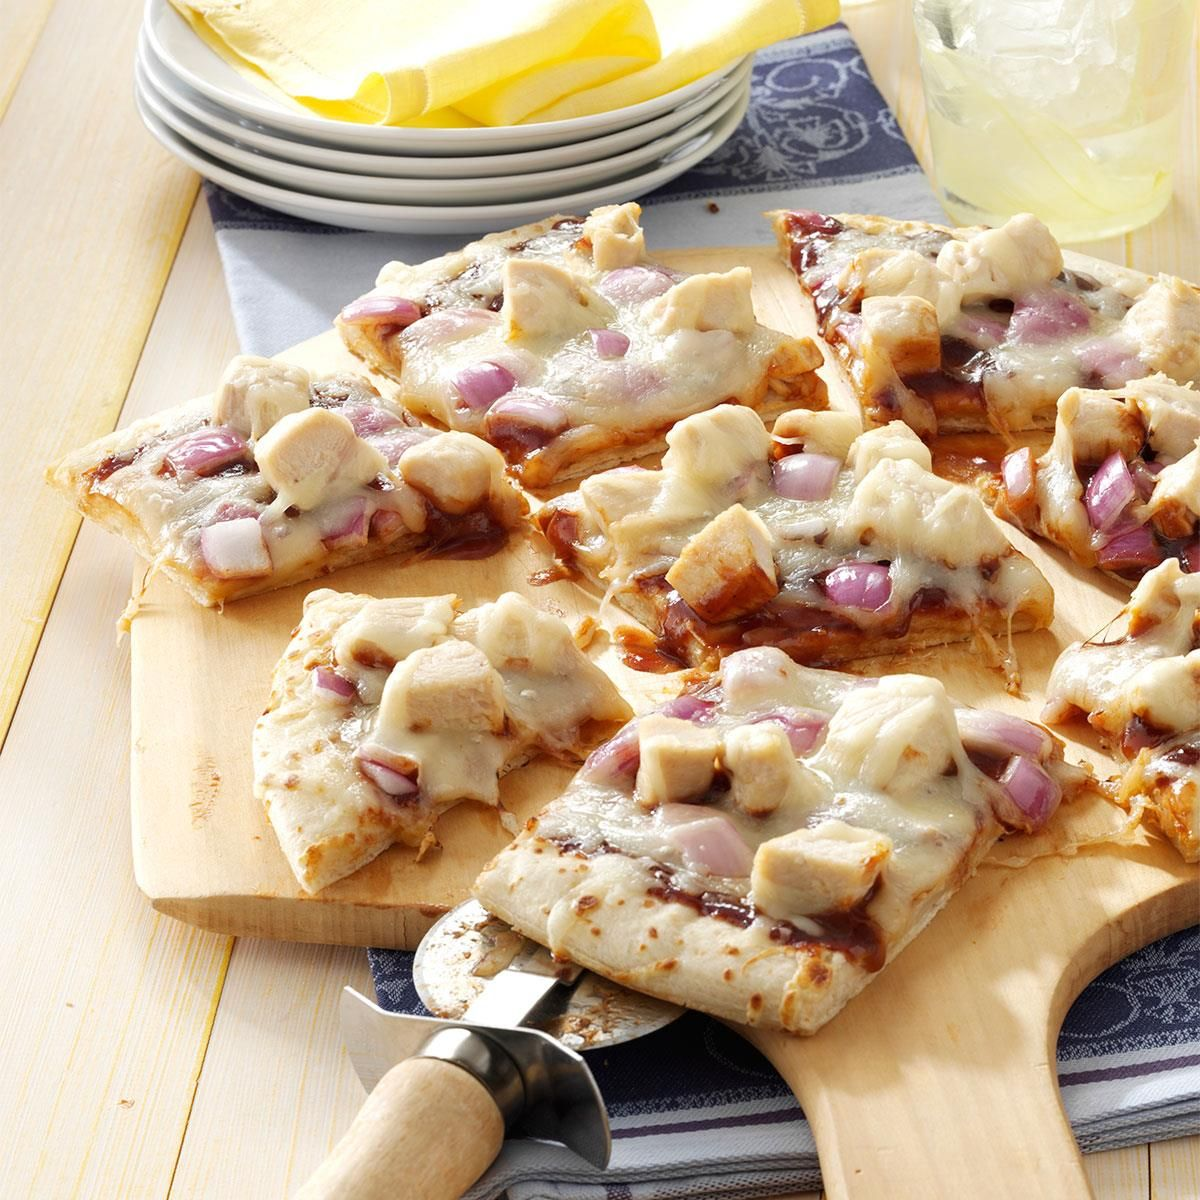 Barbecued Chicken Pizza Recipe -This pizza starts with a prepared bread shell and barbecue sauce, plus leftover cooked chicken. I simply assemble and bake. Often, I cut the pizza into small bite-size pieces and serve it as an appetizer at parties or potluck dinners.—Patricia Richardson, Verona, Ontario